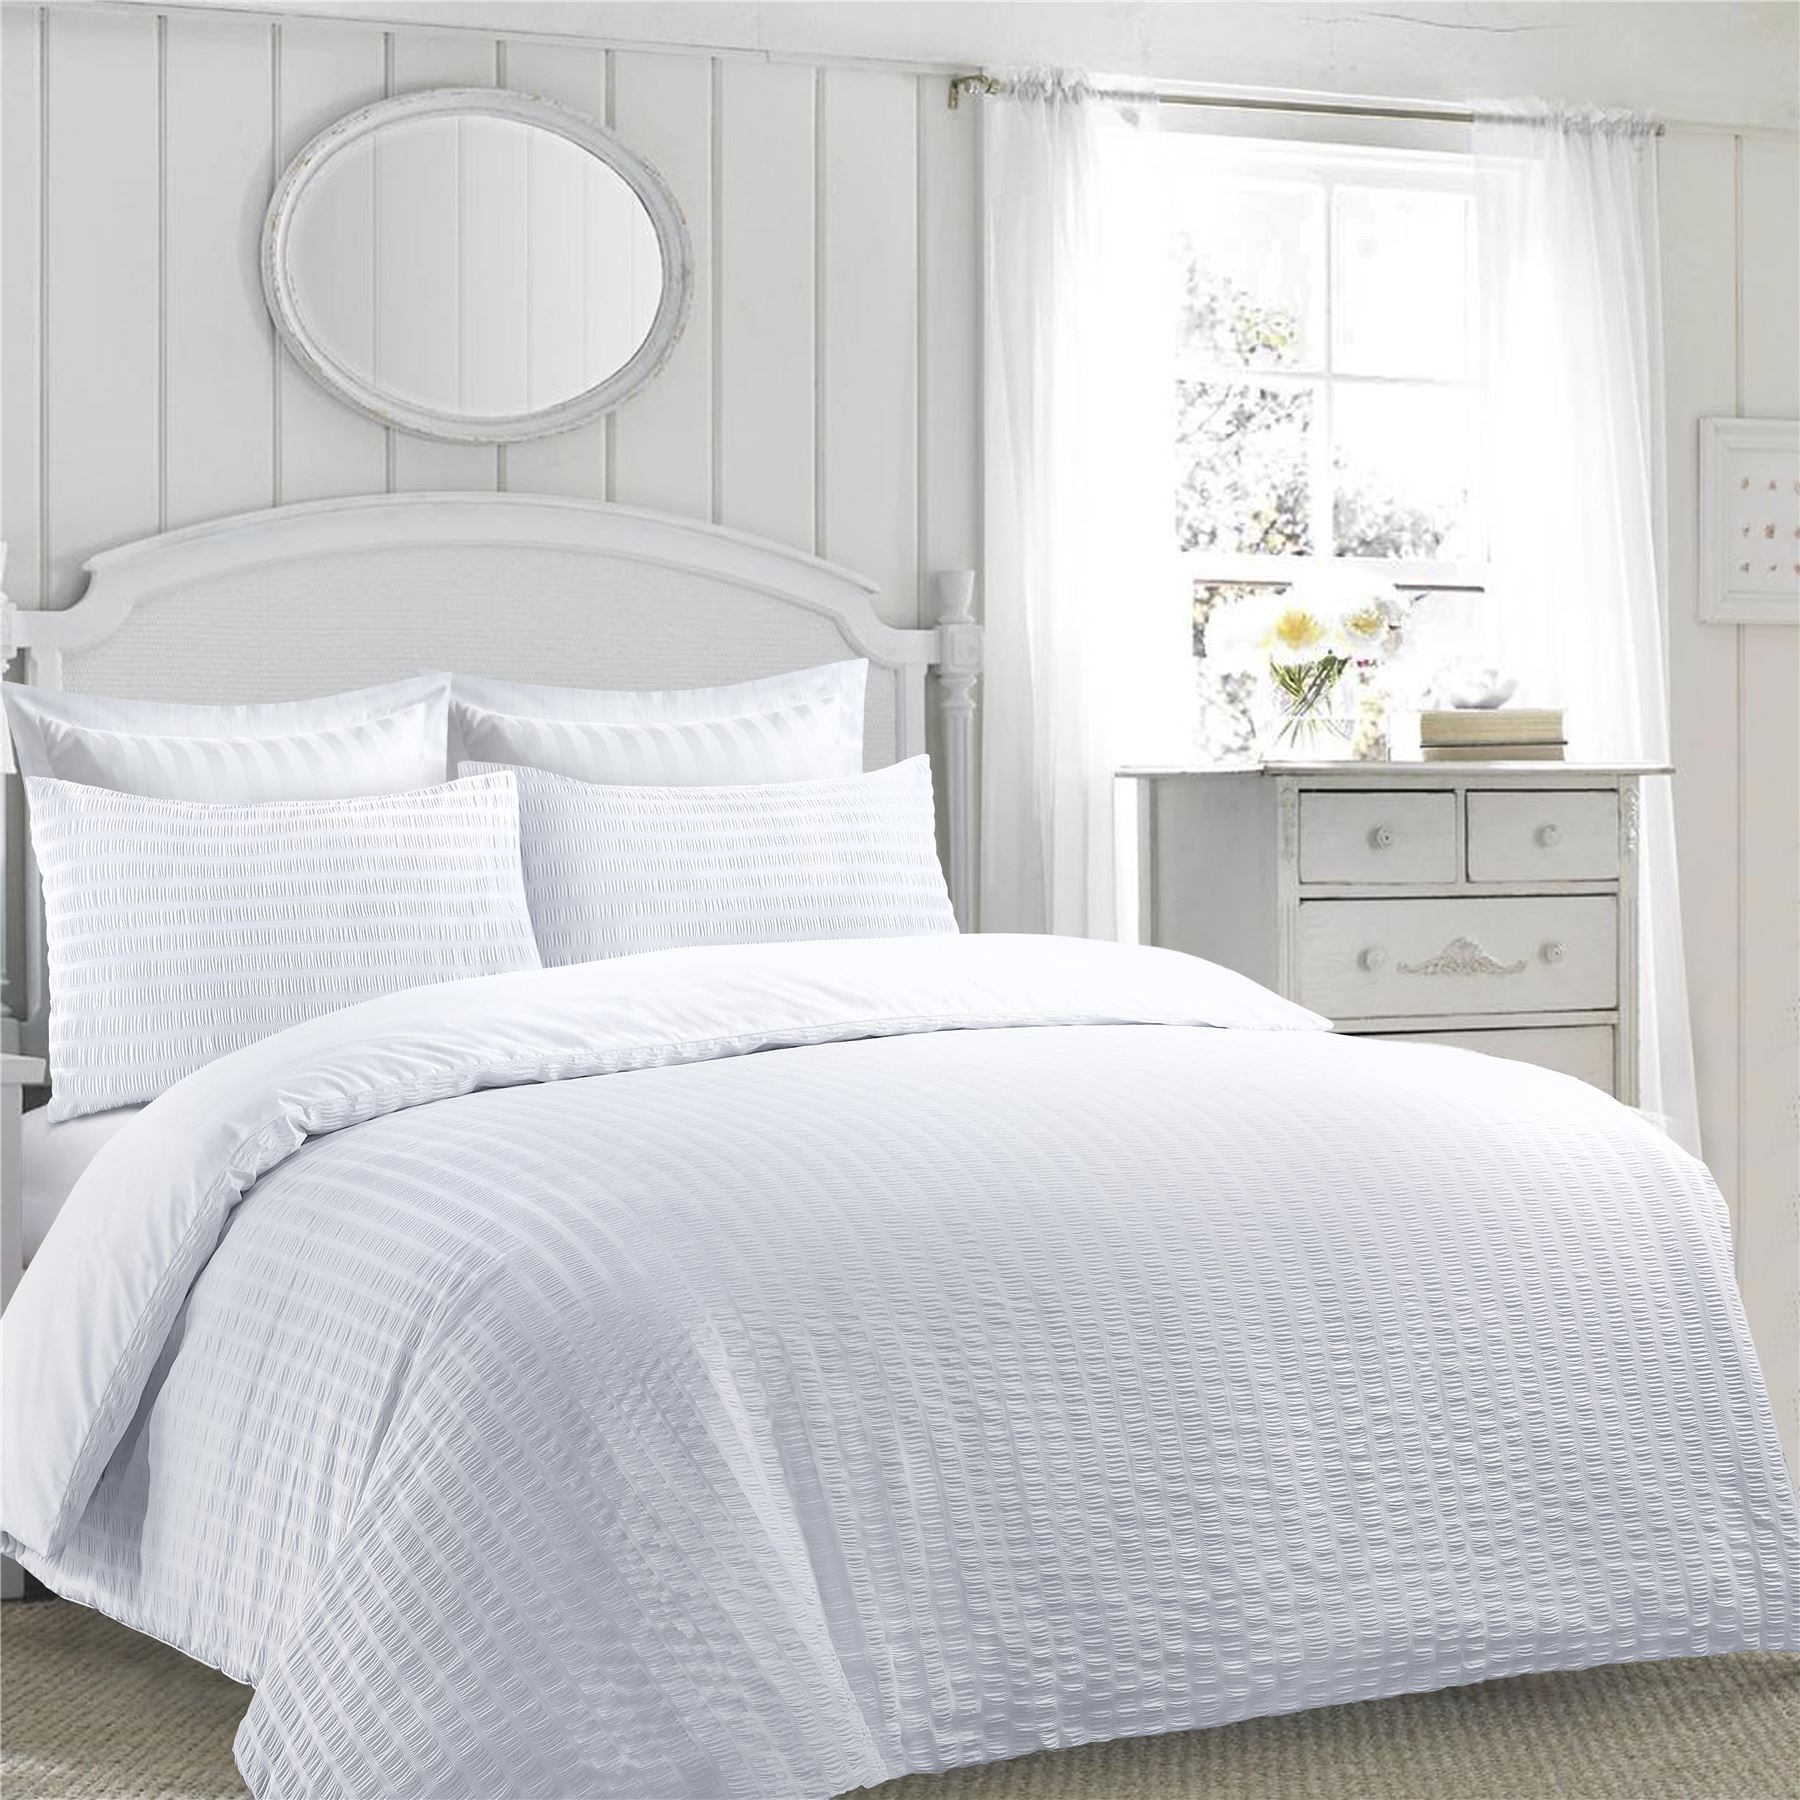 Luxury Duvet Cover Quilt Bedding Set Ruffle Ruched Poly Cotton With Pillowcase